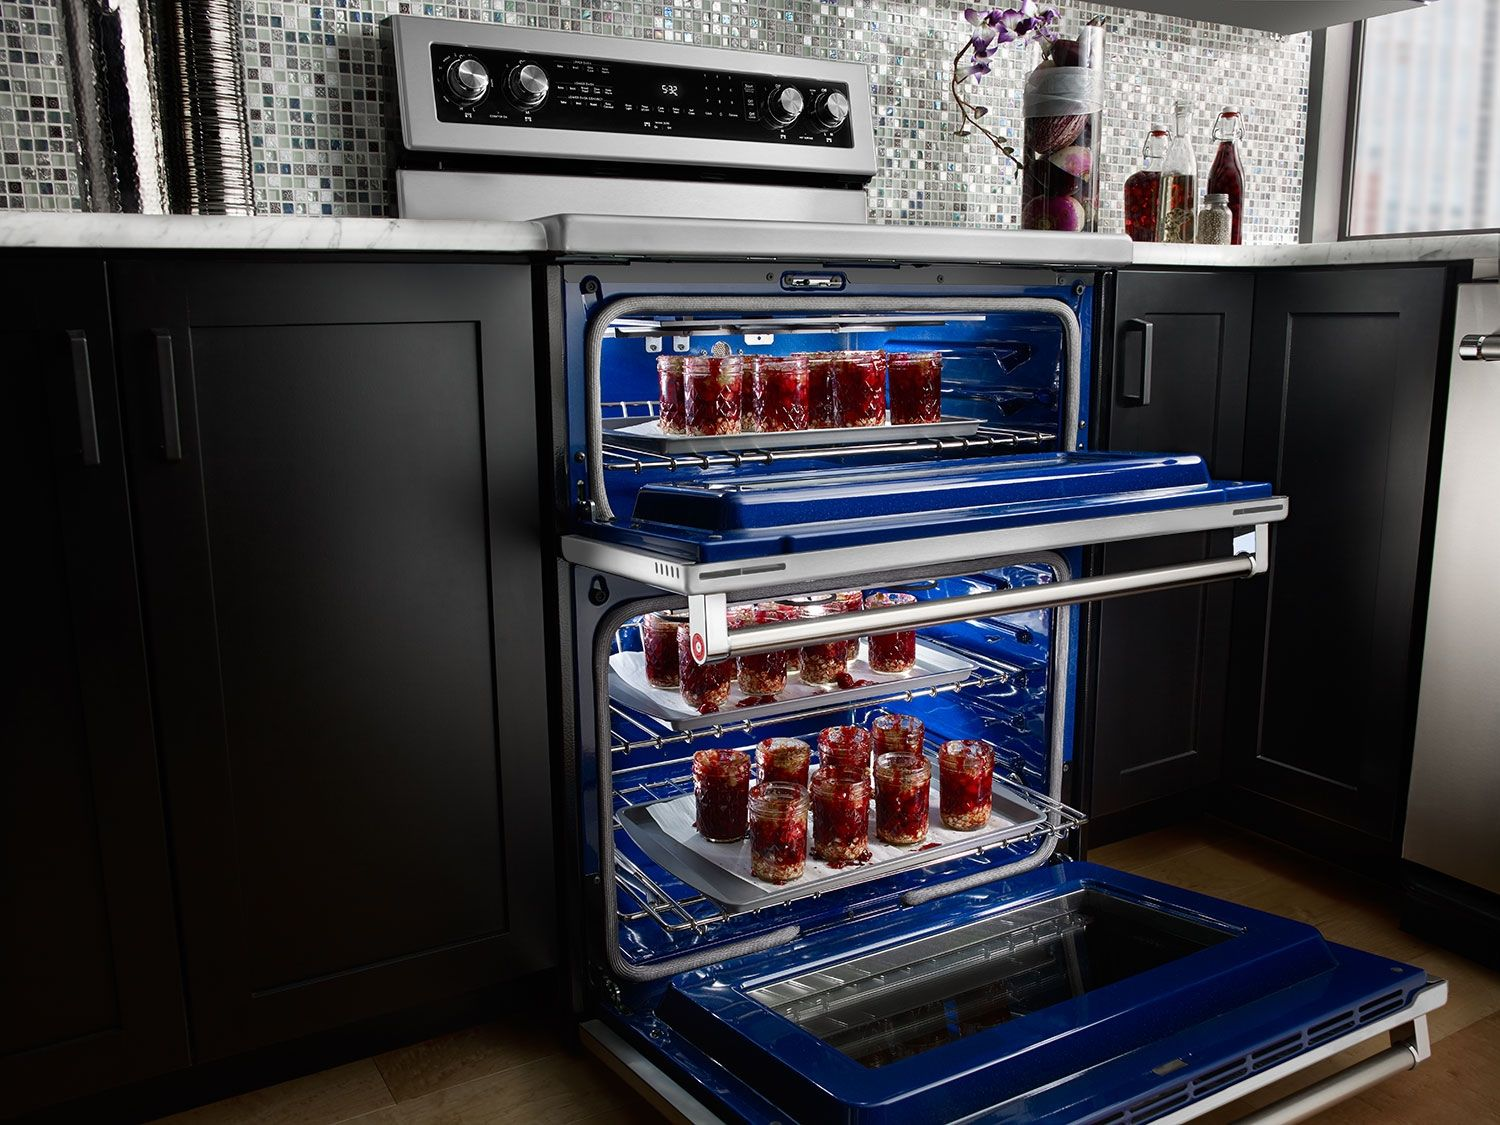 Charmant Self Cleaning Freestanding Double Oven Electric Convection Range    Stainless Steel   Zoom